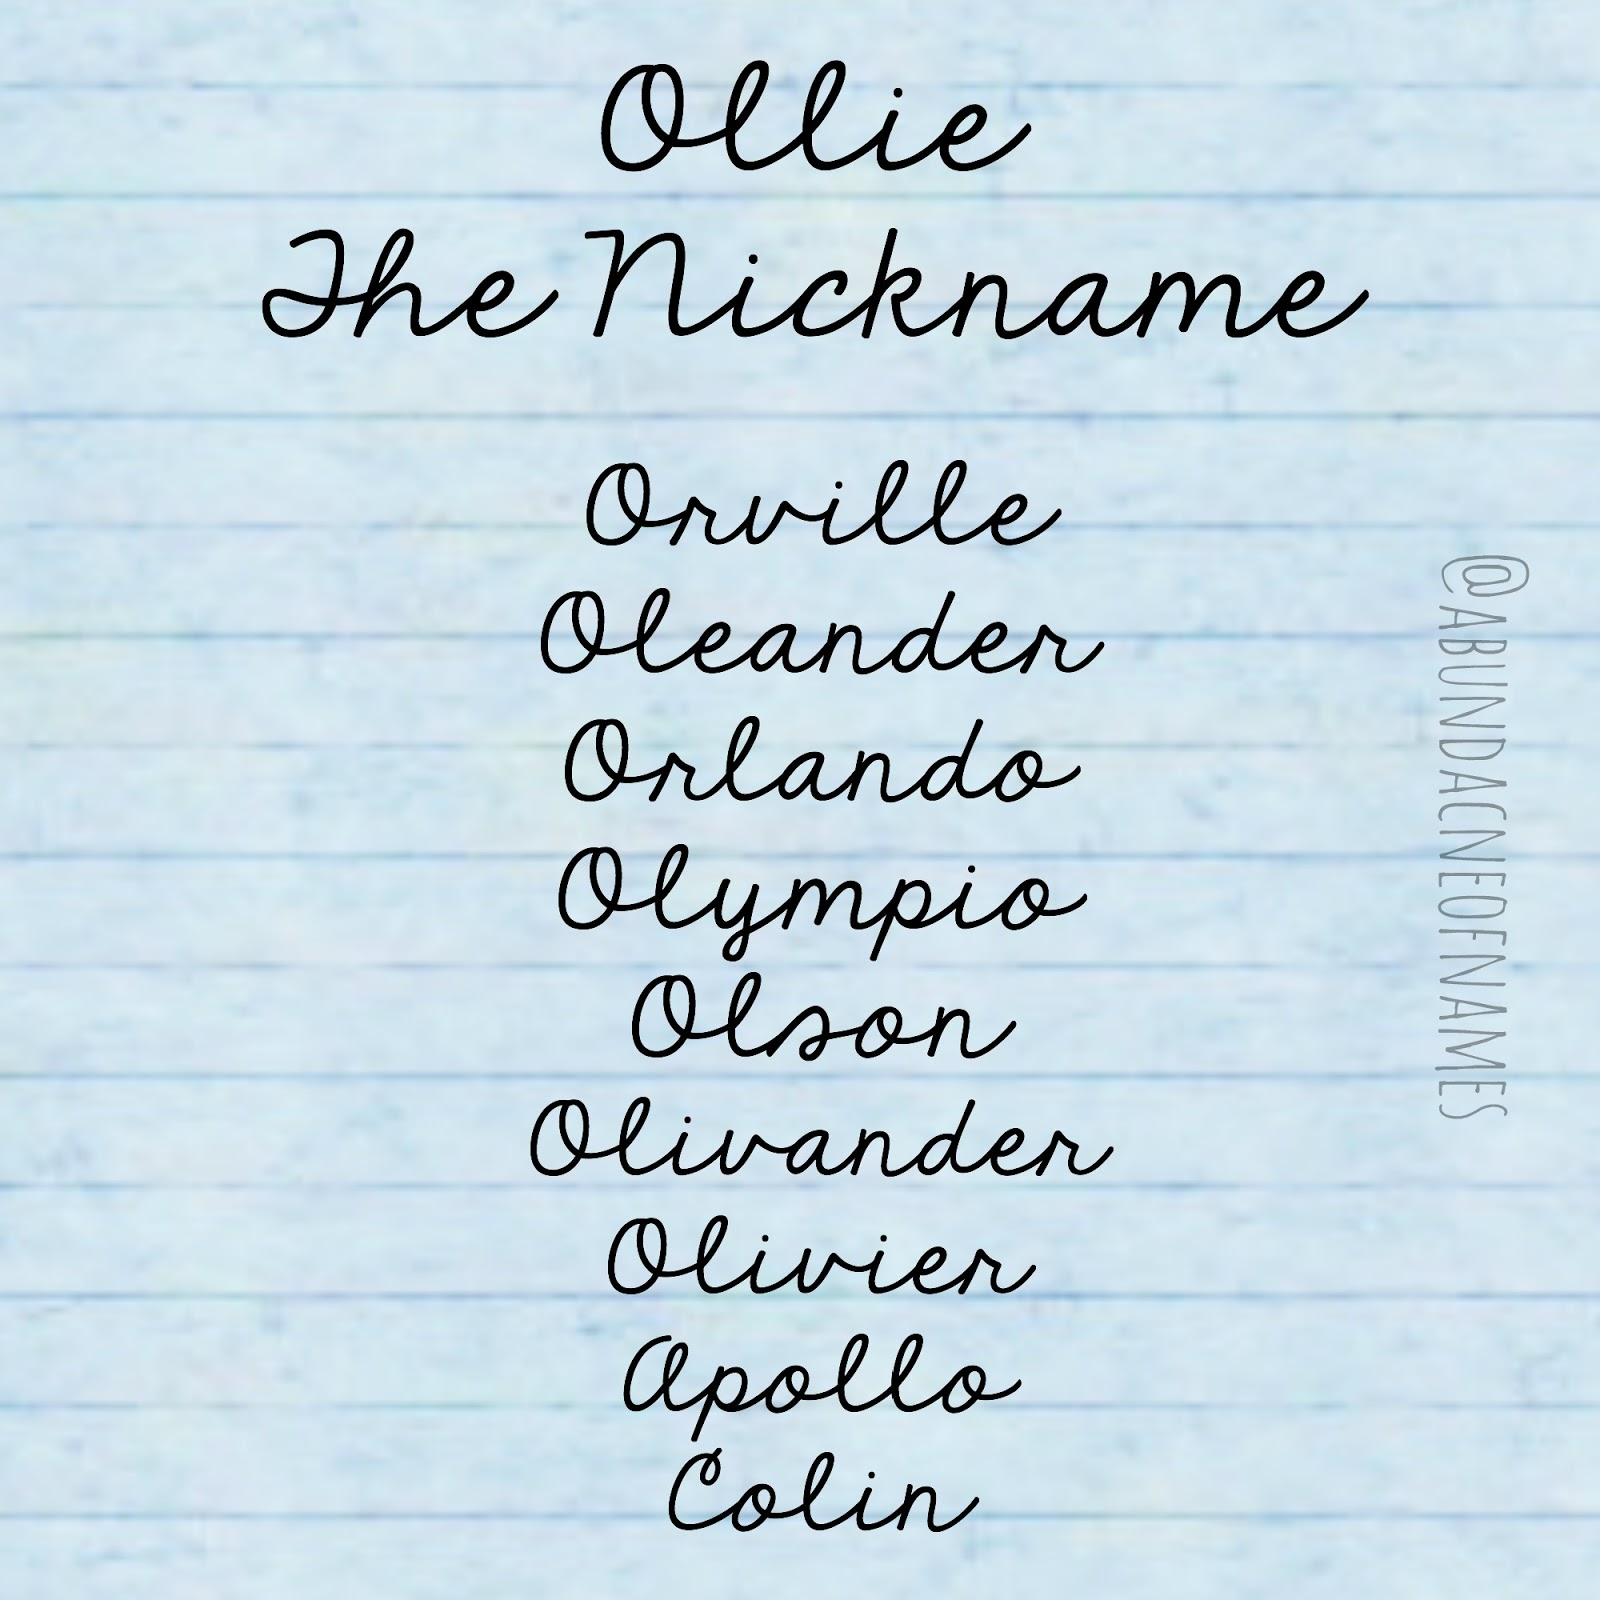 Baby names and nicknames